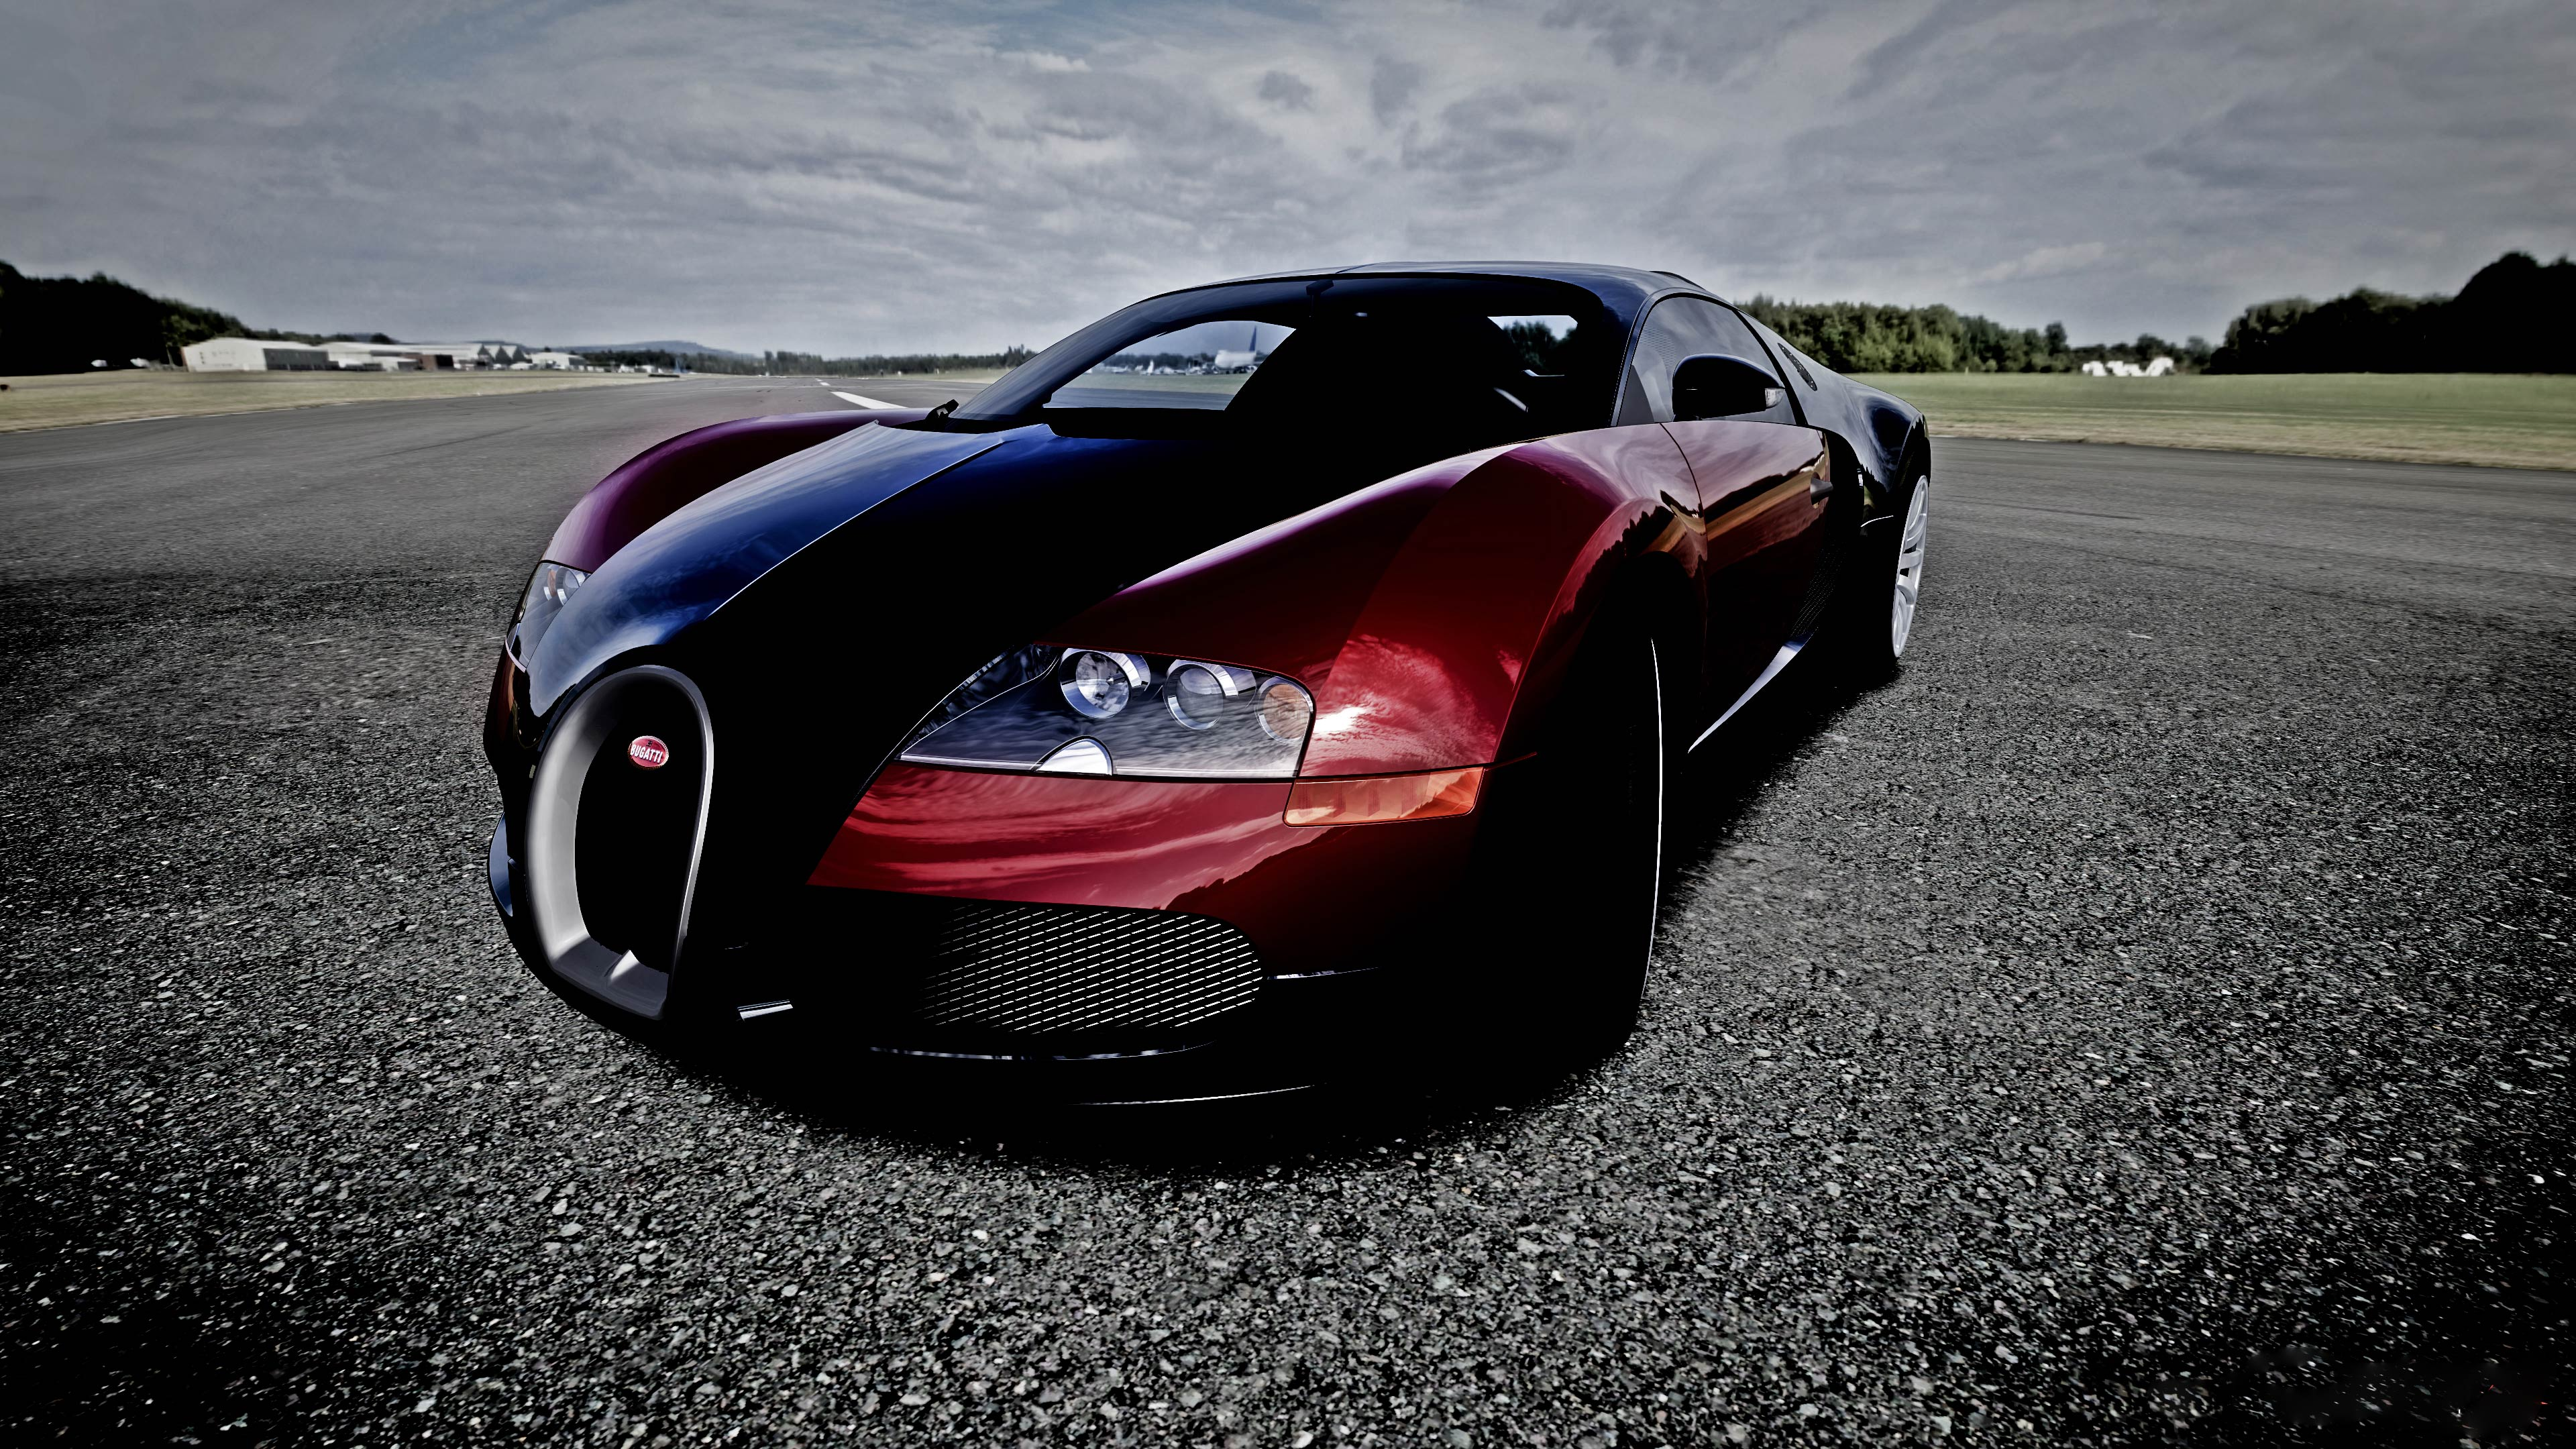 Ss 3d Name Wallpapers Hd Bugatti Wallpapers For Free Download